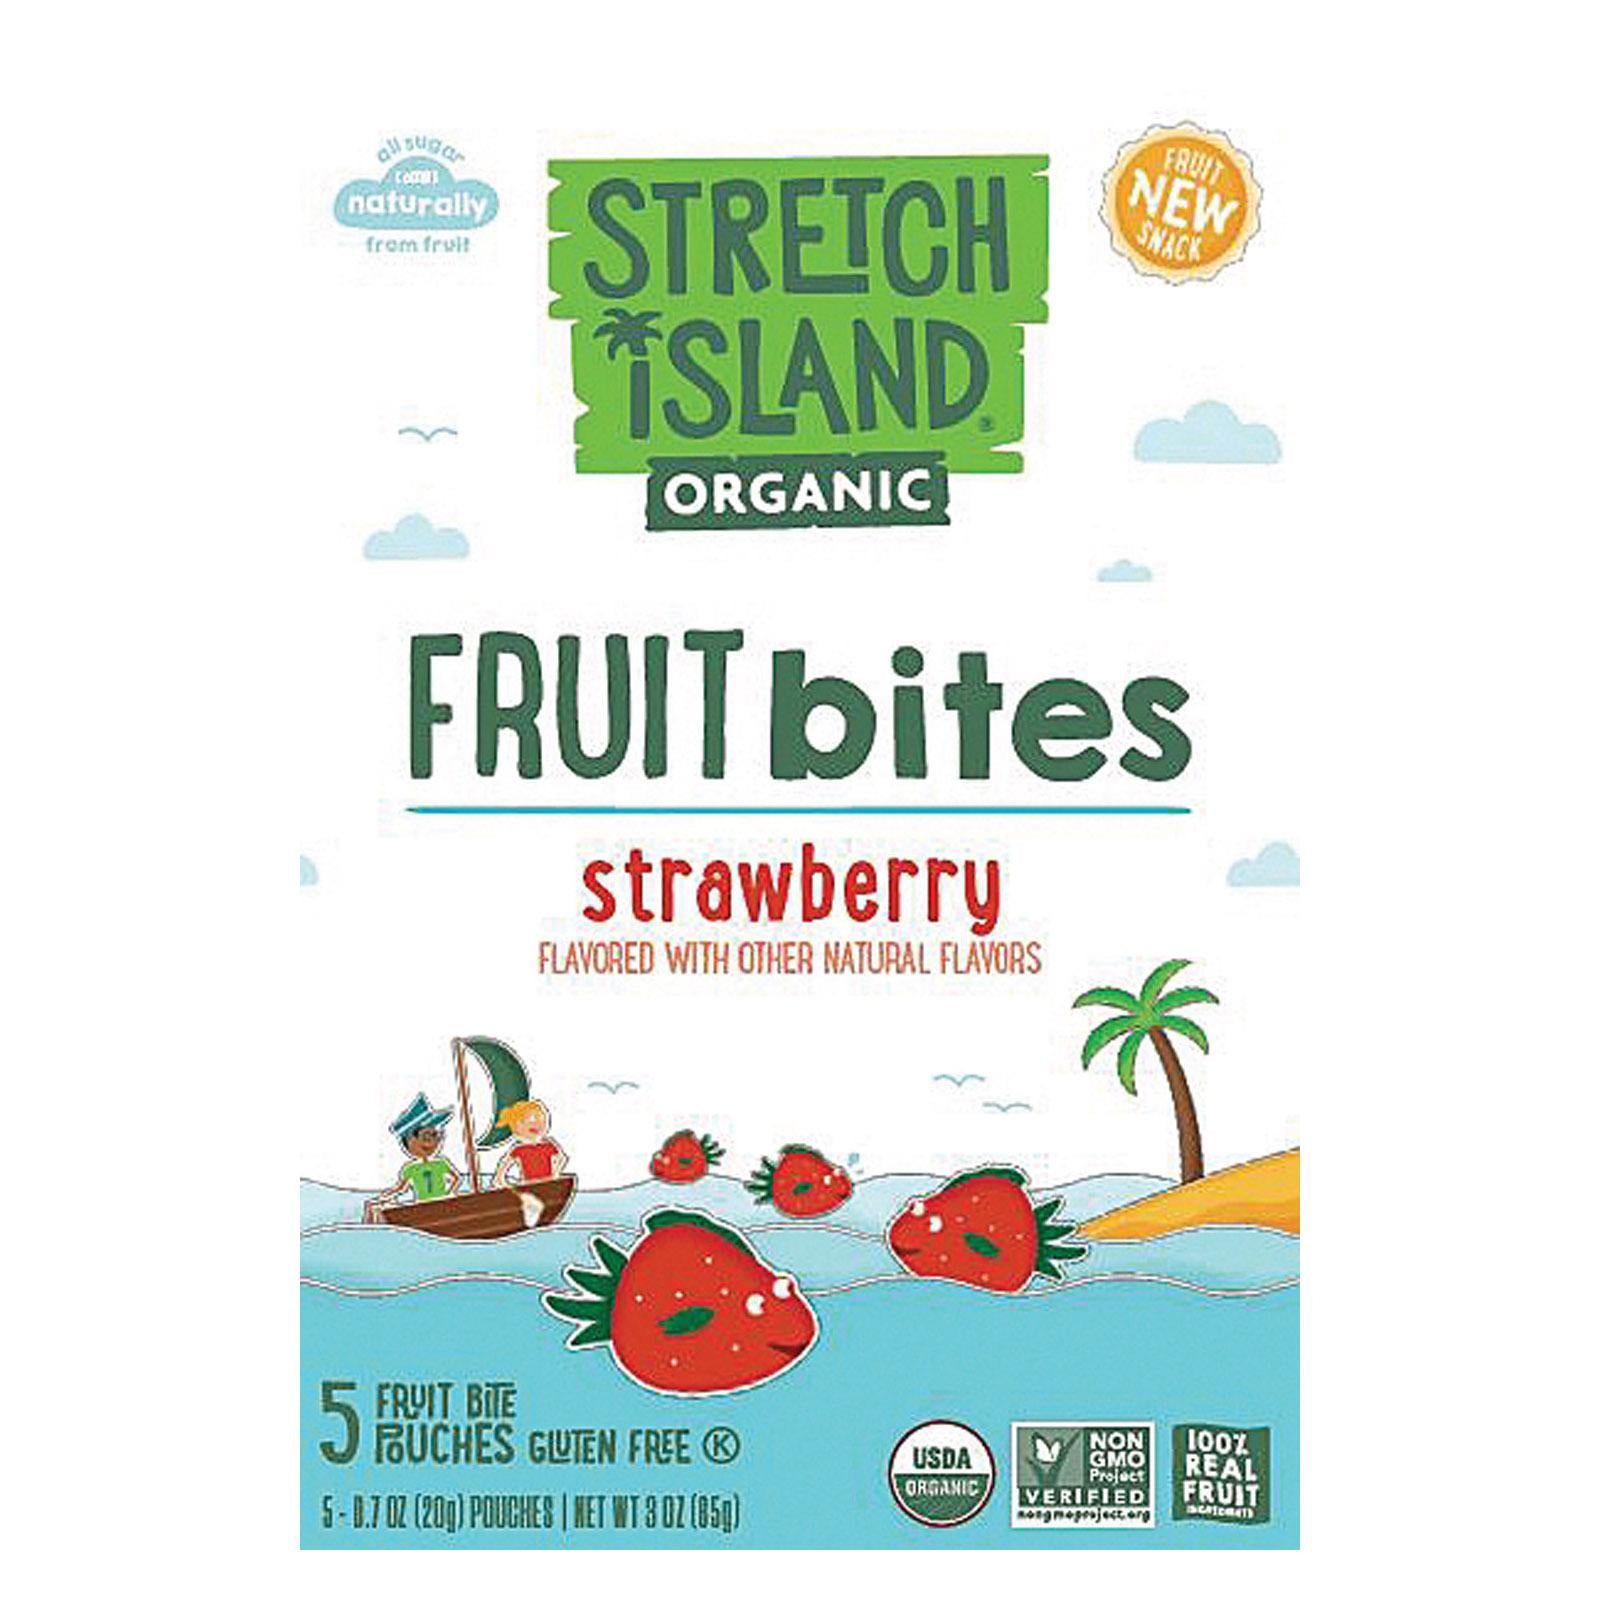 Stretch Island Organic Fruit Bites - Strawberry